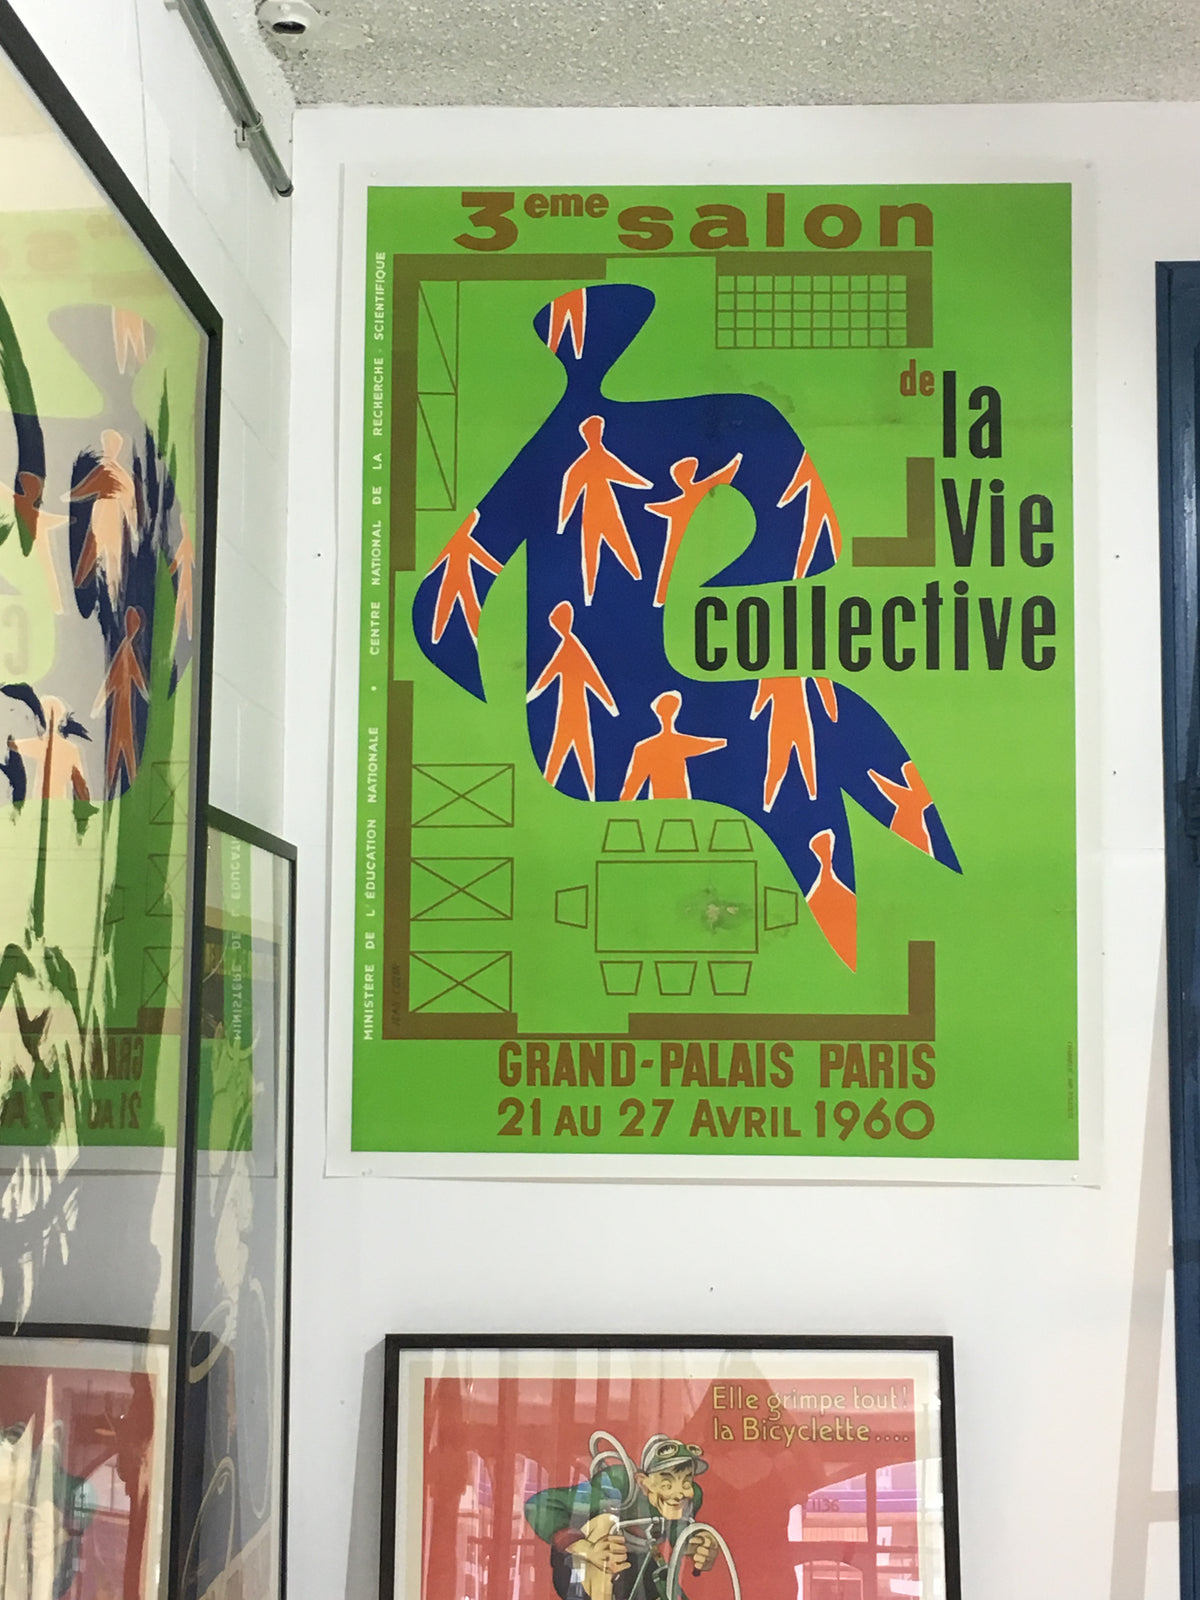 La Vie Collective by Jean Colin